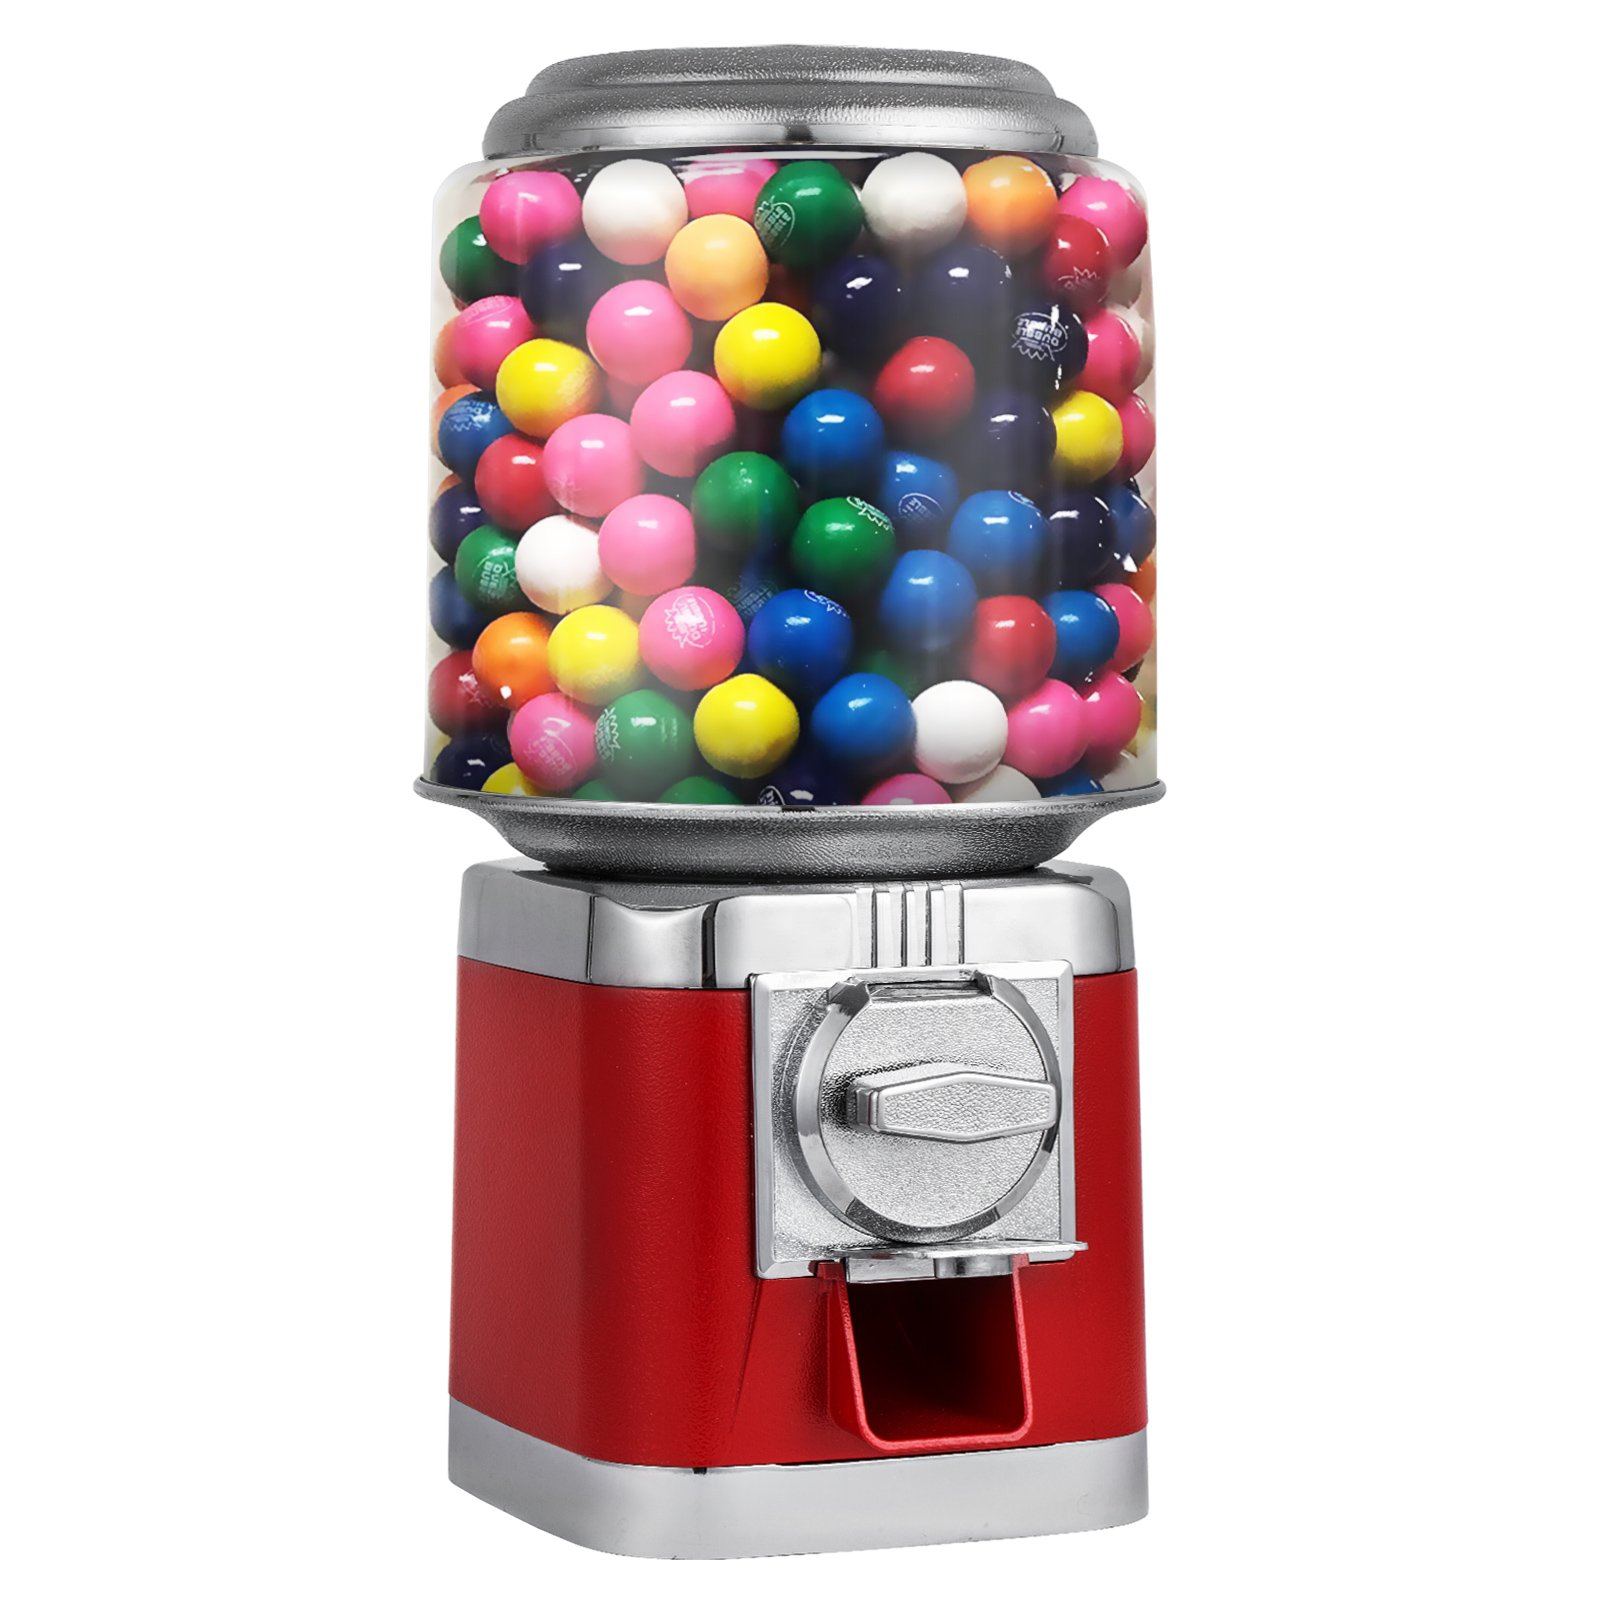 Onionfree Metal Bulk Vending Gumball Machine with Lock& Key Candy Vending Equipment Gumball Dispenser Contains 325pcs 1'' Gumballs